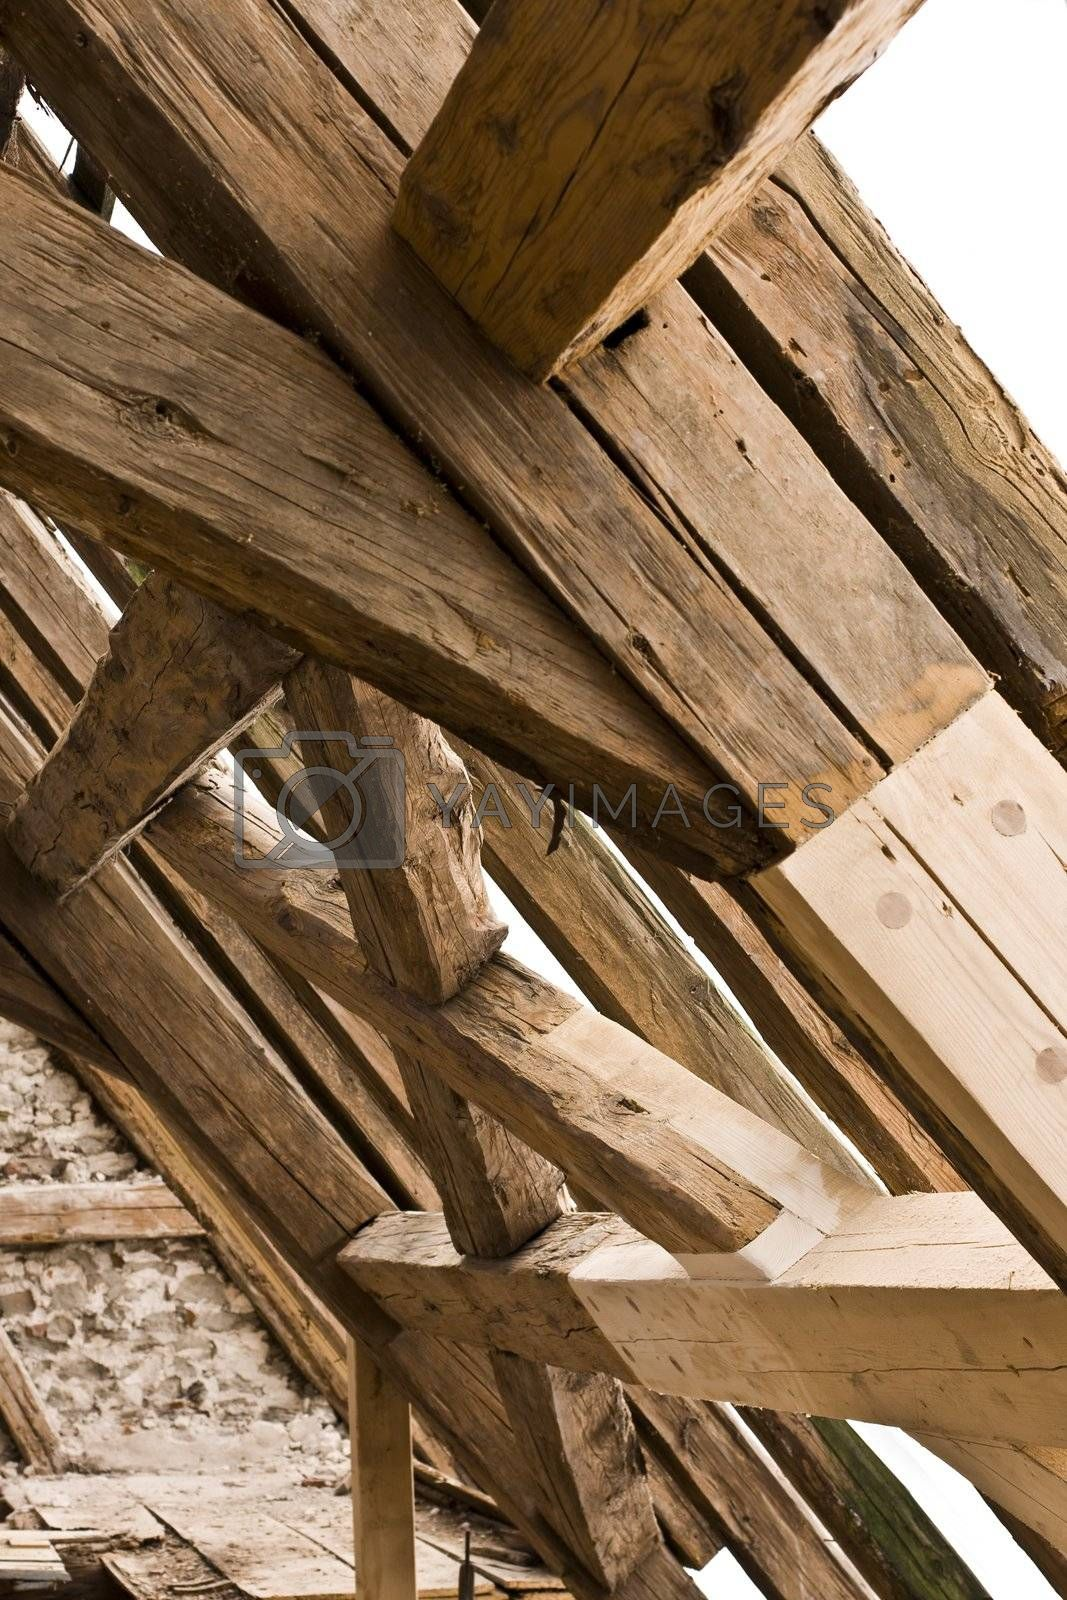 wooden framework on ancient roof with old and new wood